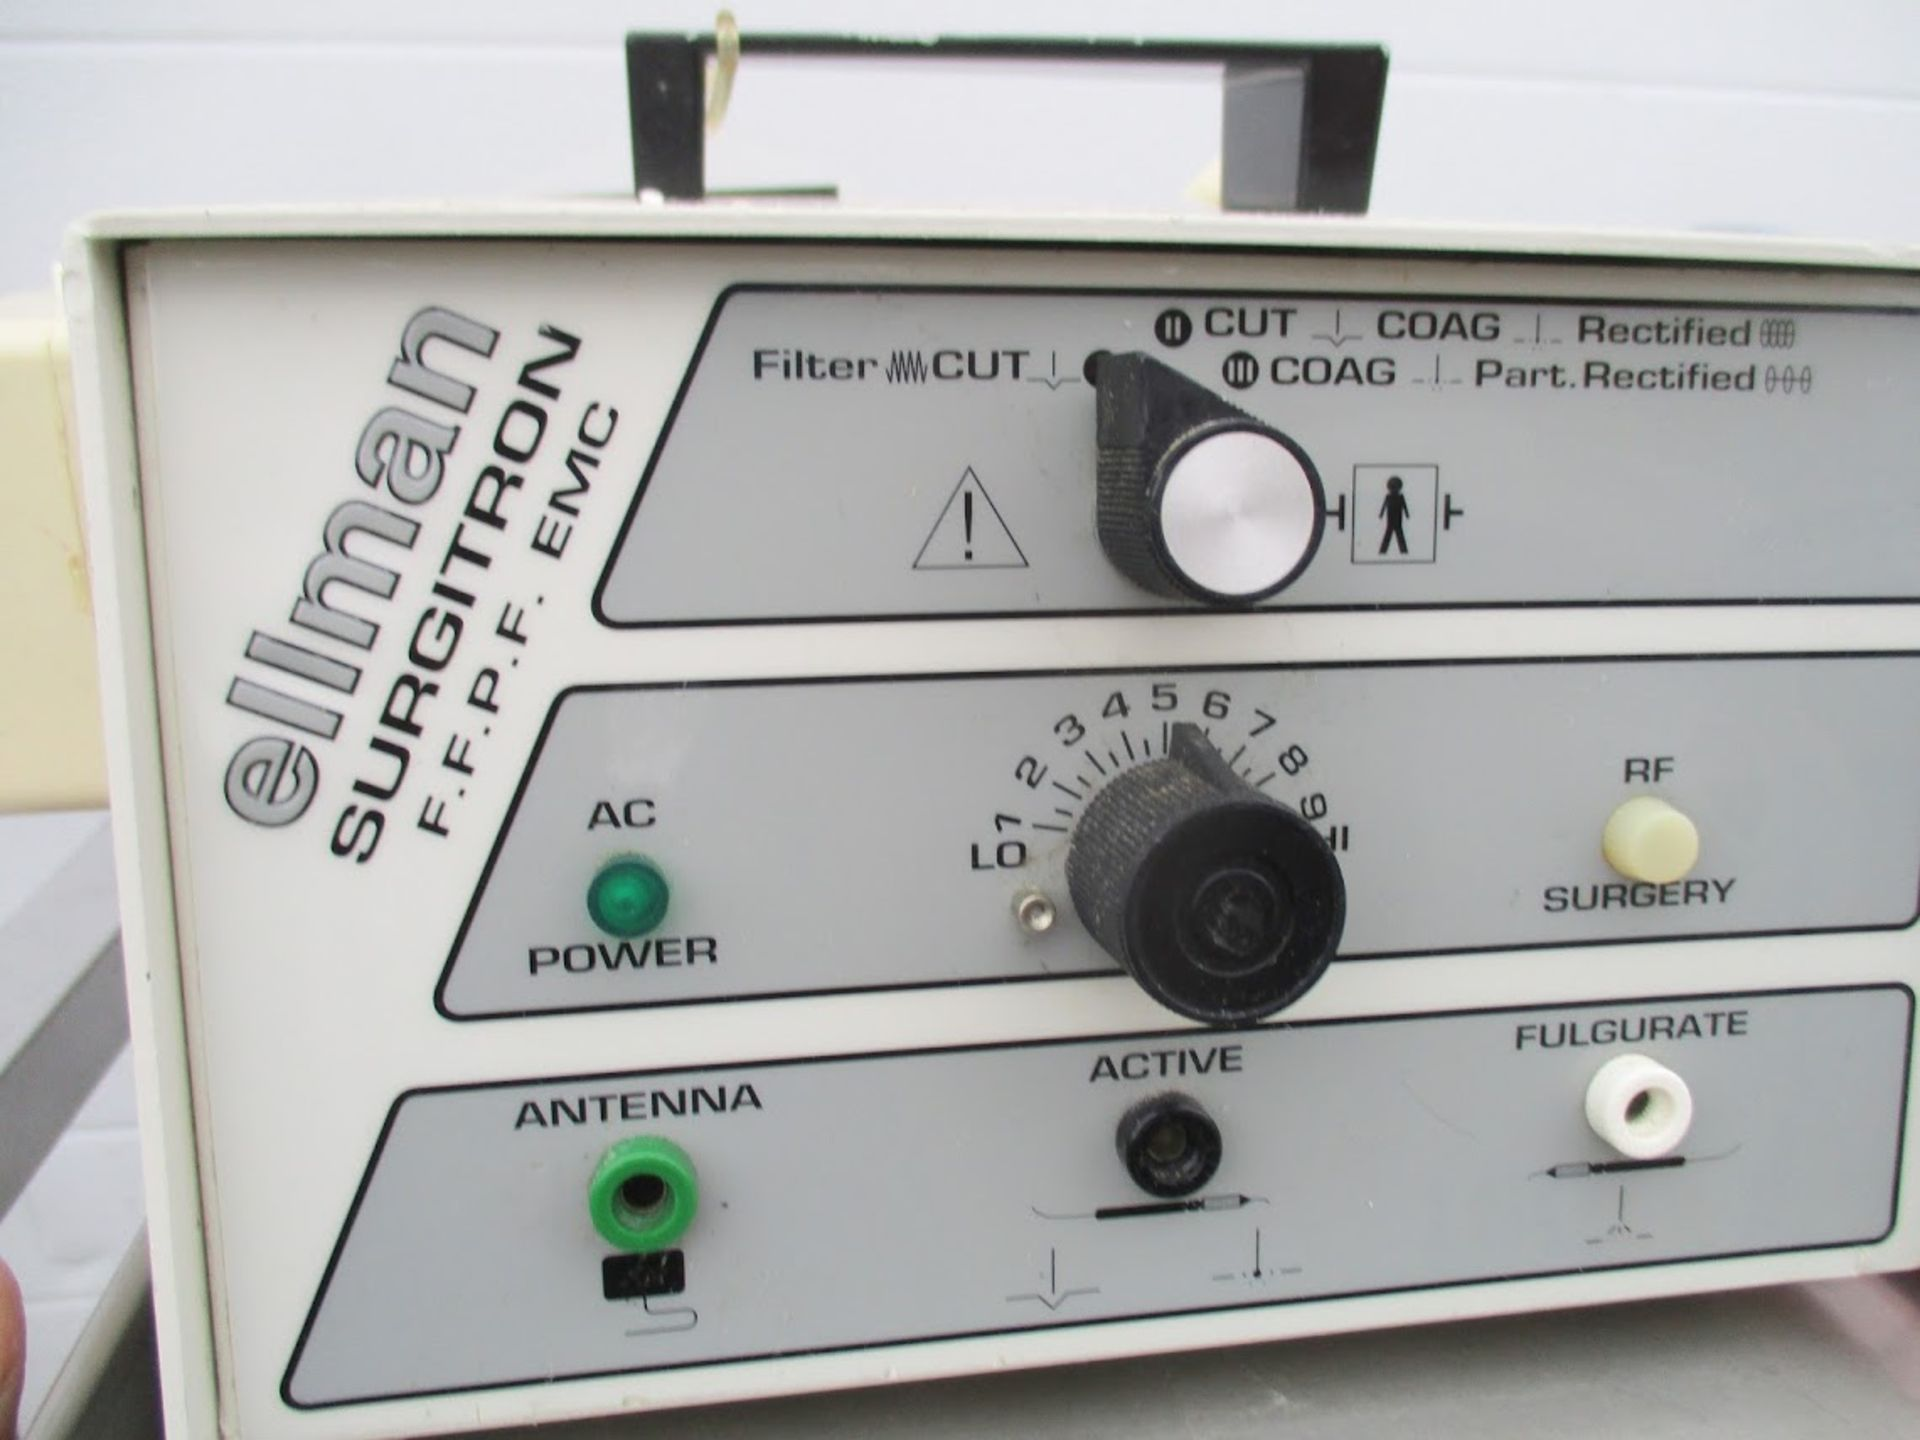 Ellman Surgitron EMC FFPF Electrosurgery Unit for Opthalmology. Comes with round loop electrodes, - Image 2 of 7